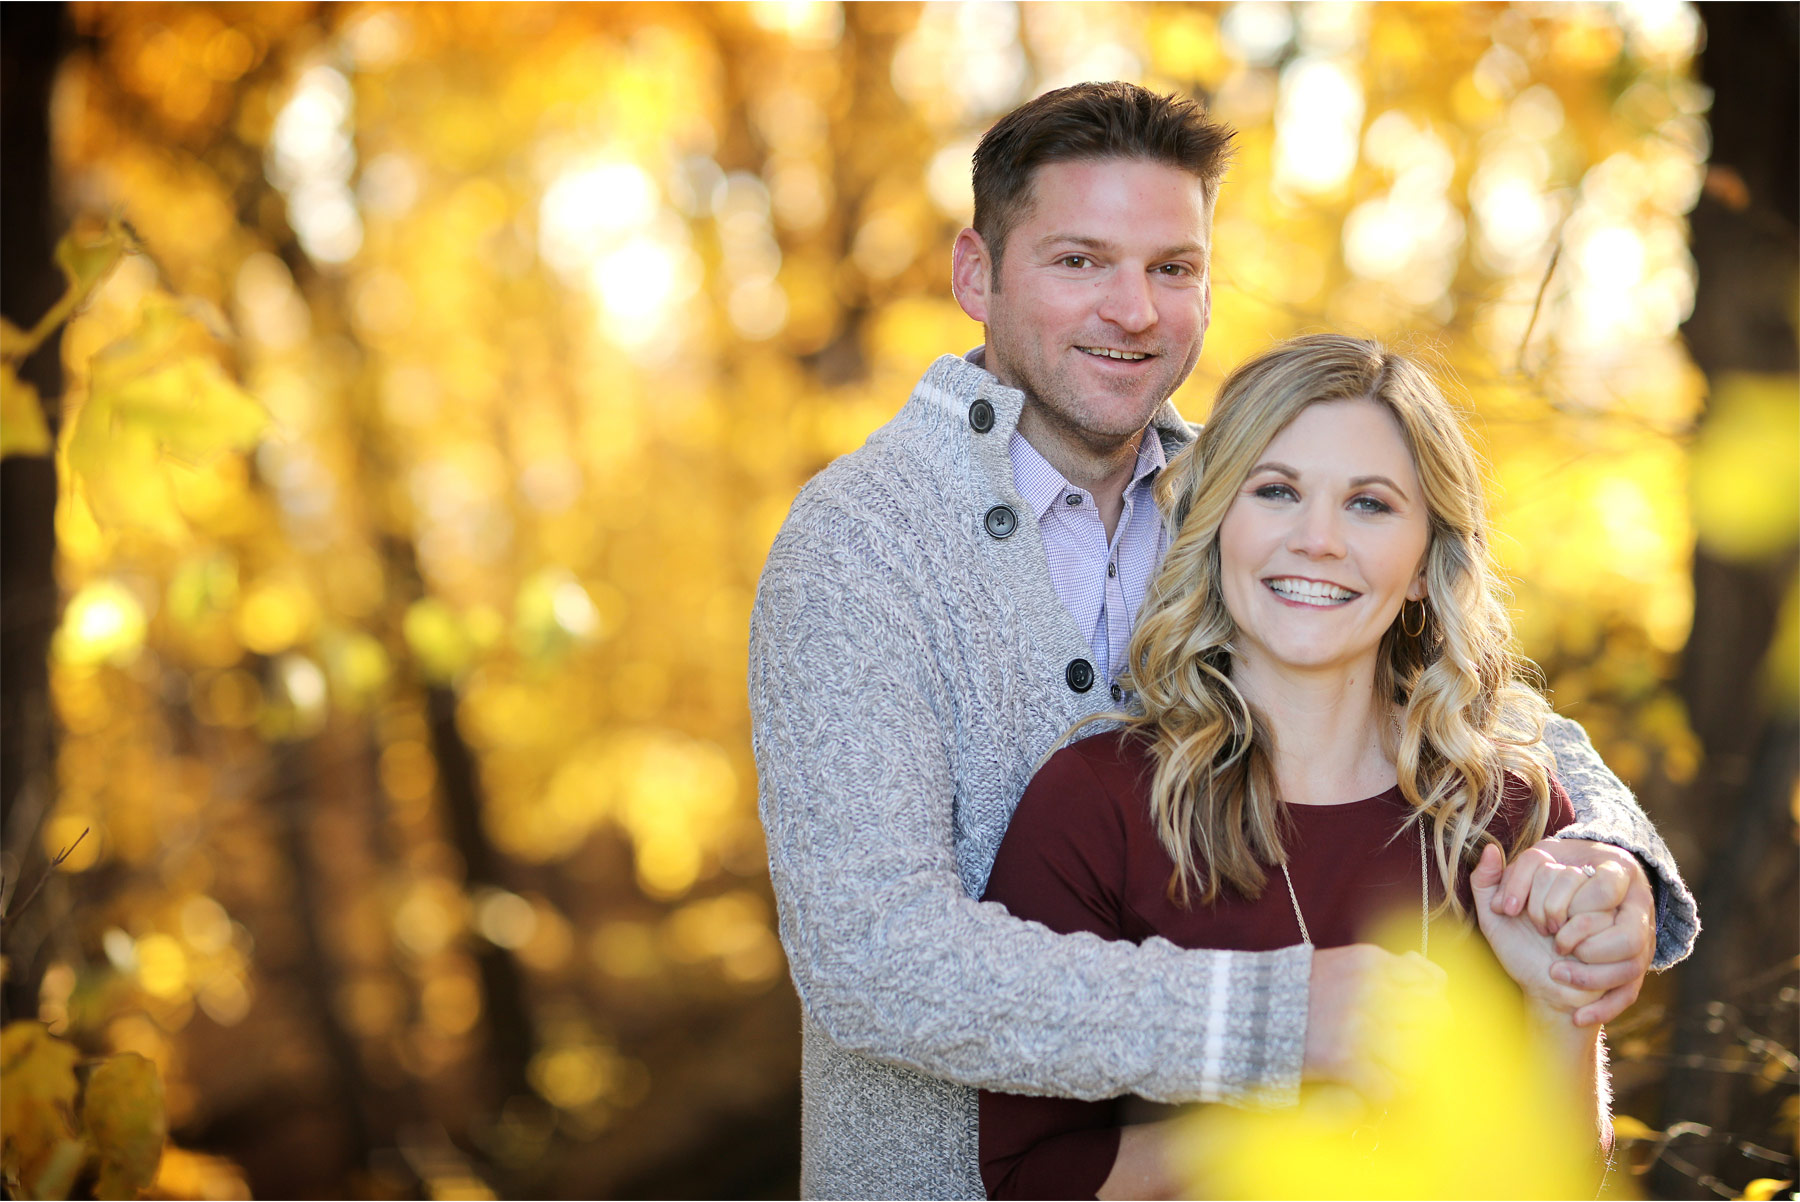 10-Vick-Photography-Destination-Engagement-Session-Autumn-Fall-Leafs-Sunset-Katie-and-Bob.jpg